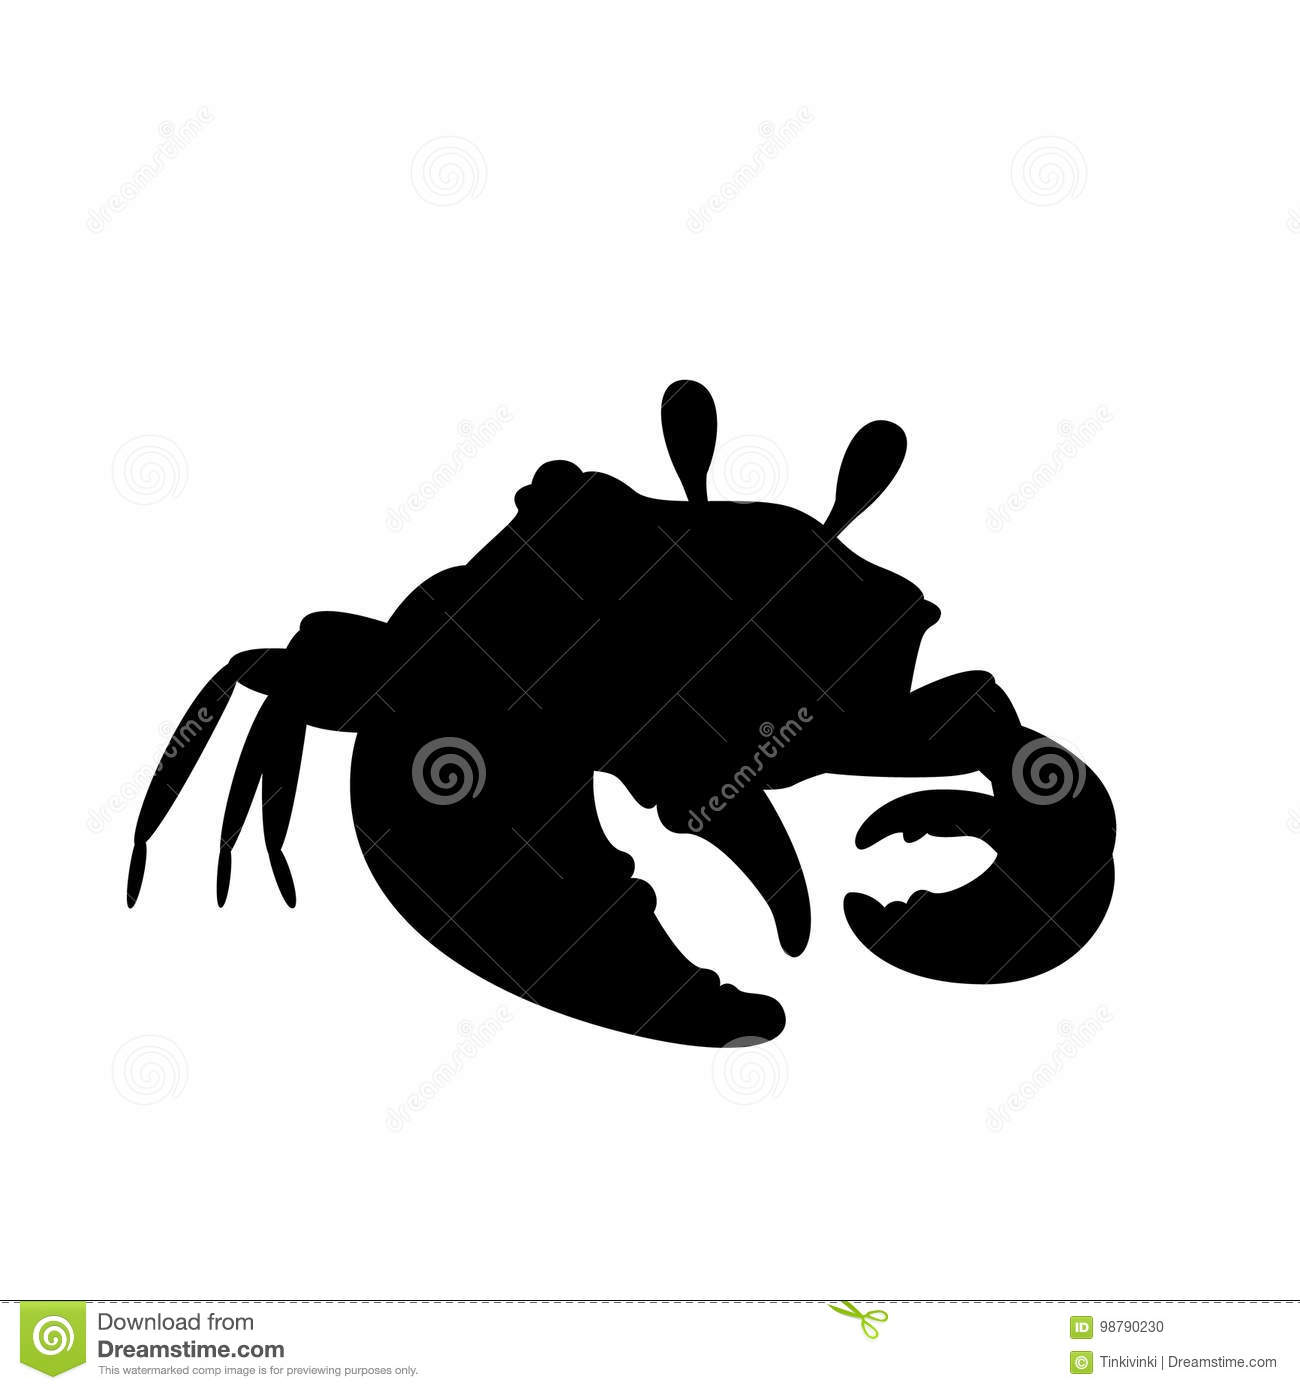 Black Crab Pose Meme: Crab In Cool Pose Silhouette. Vector. Stock Vector